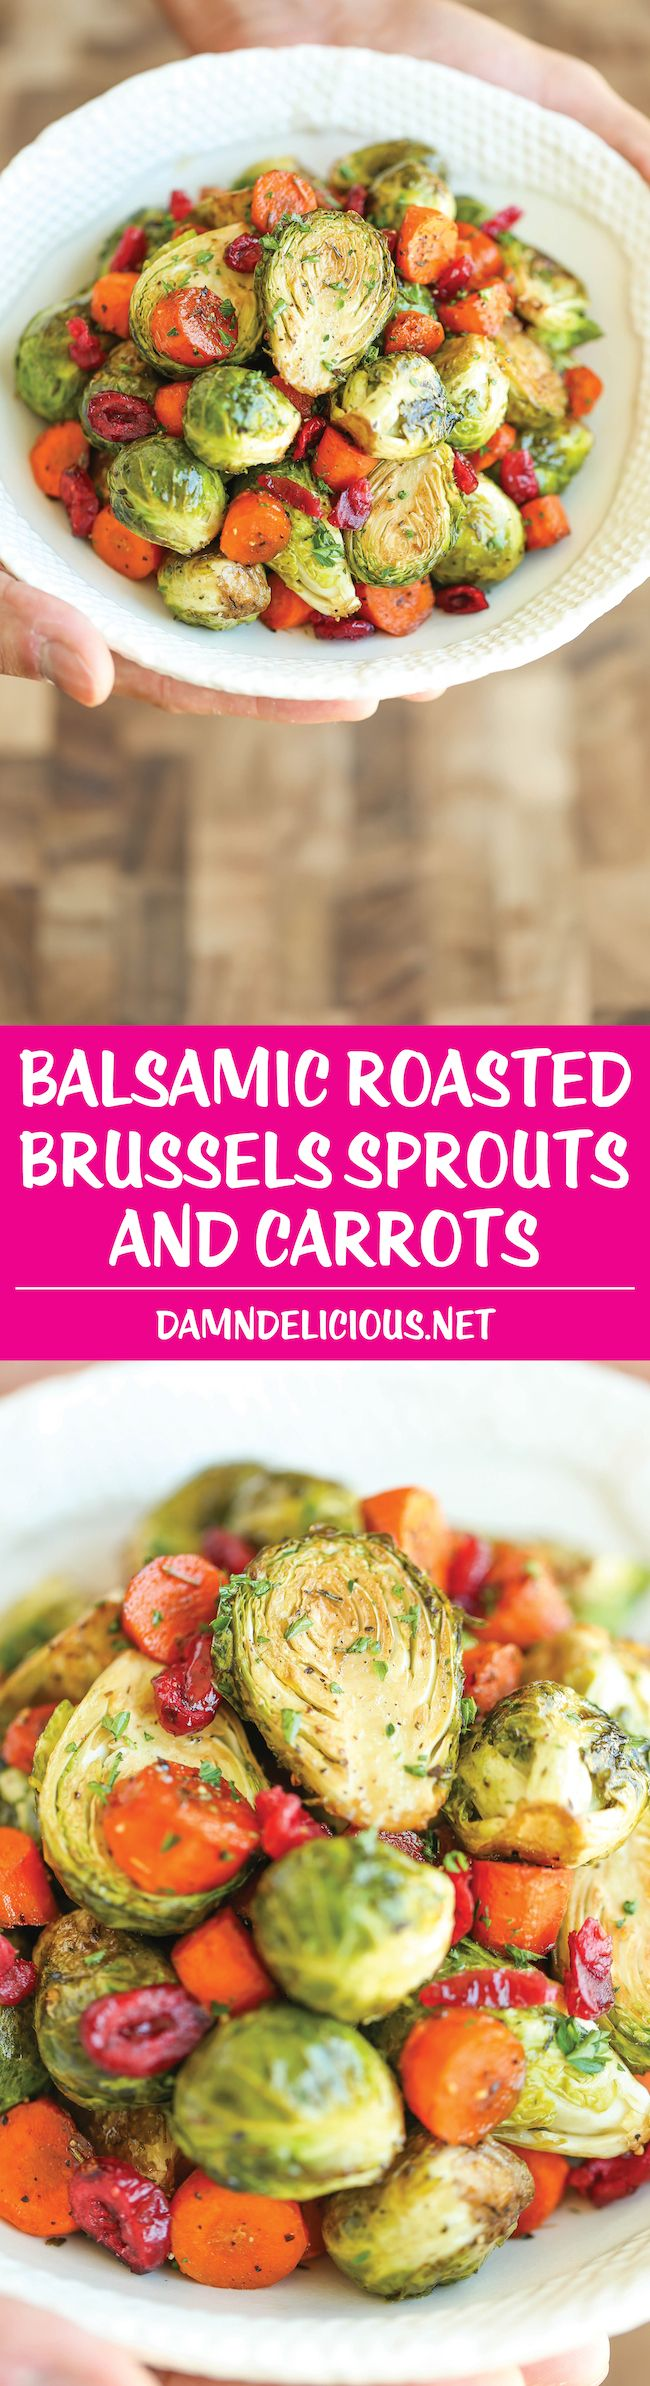 Balsamic Roasted Brussels Sprouts And Carrots Recipe